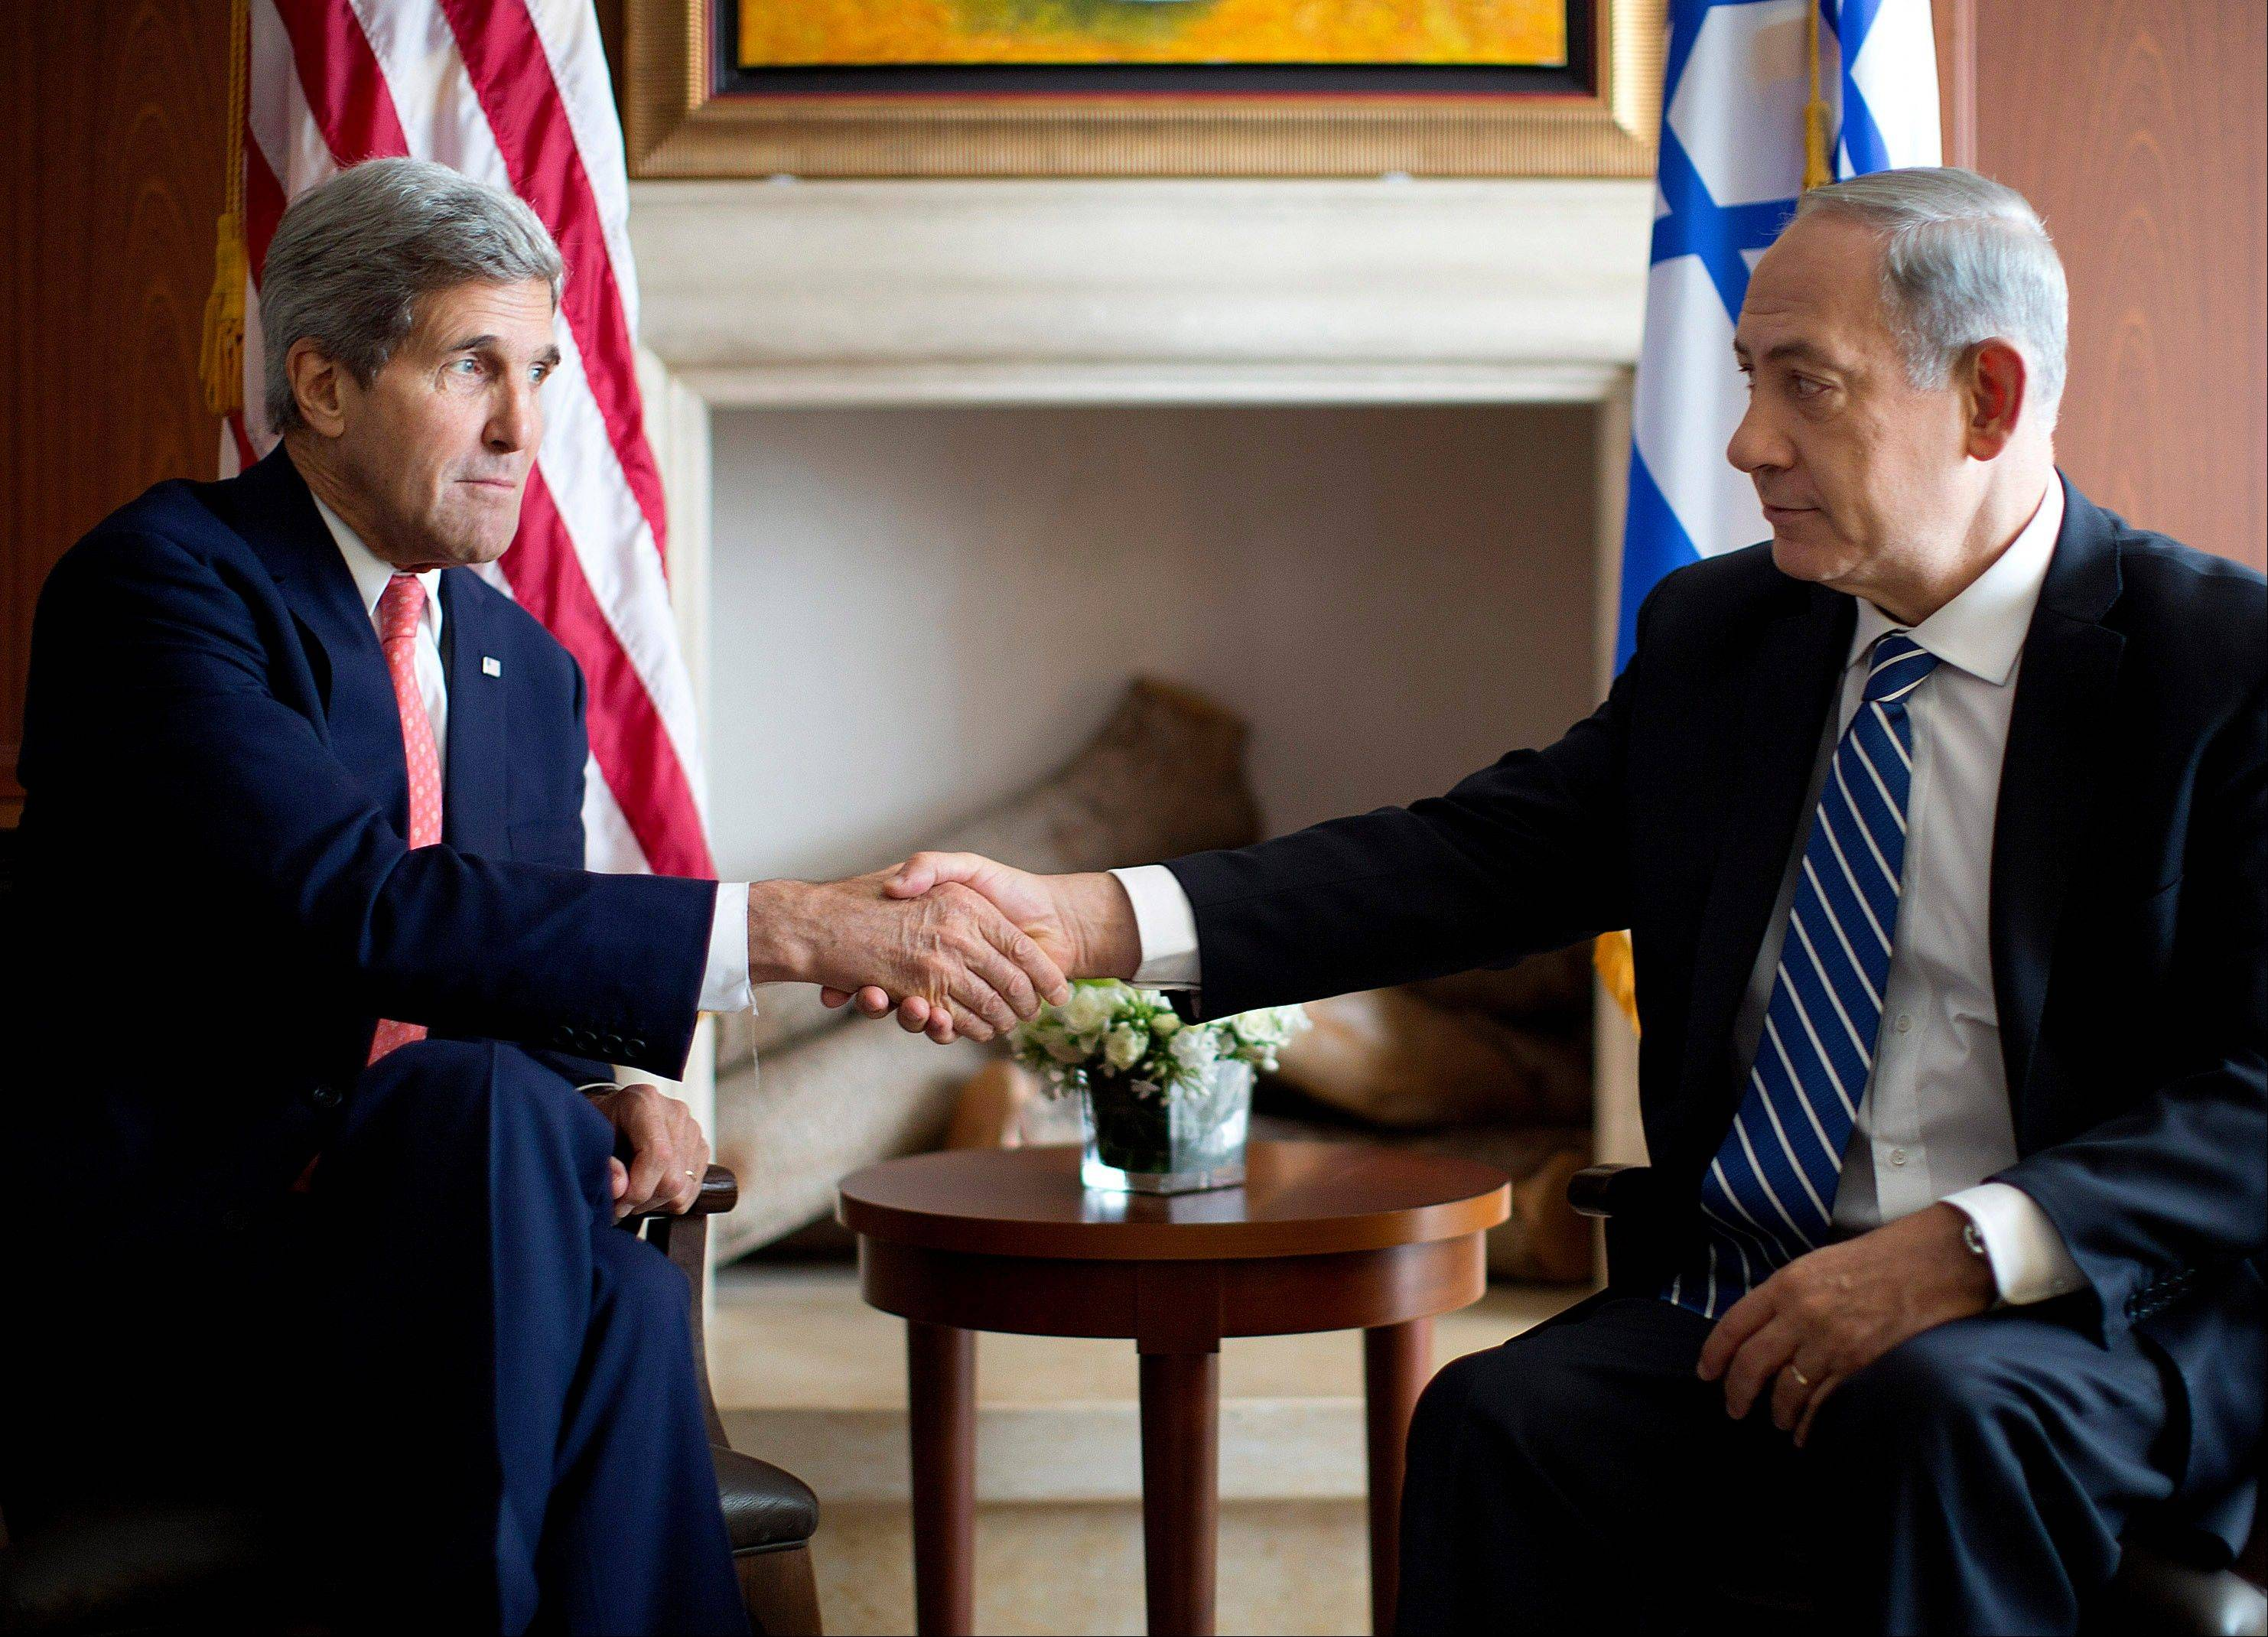 U.S. Secretary of State John Kerry, right, shakes hands with Israeli Prime Minister Benjamin Netanyahu in Jerusalem, Wednesday, Nov. 6, 2013.